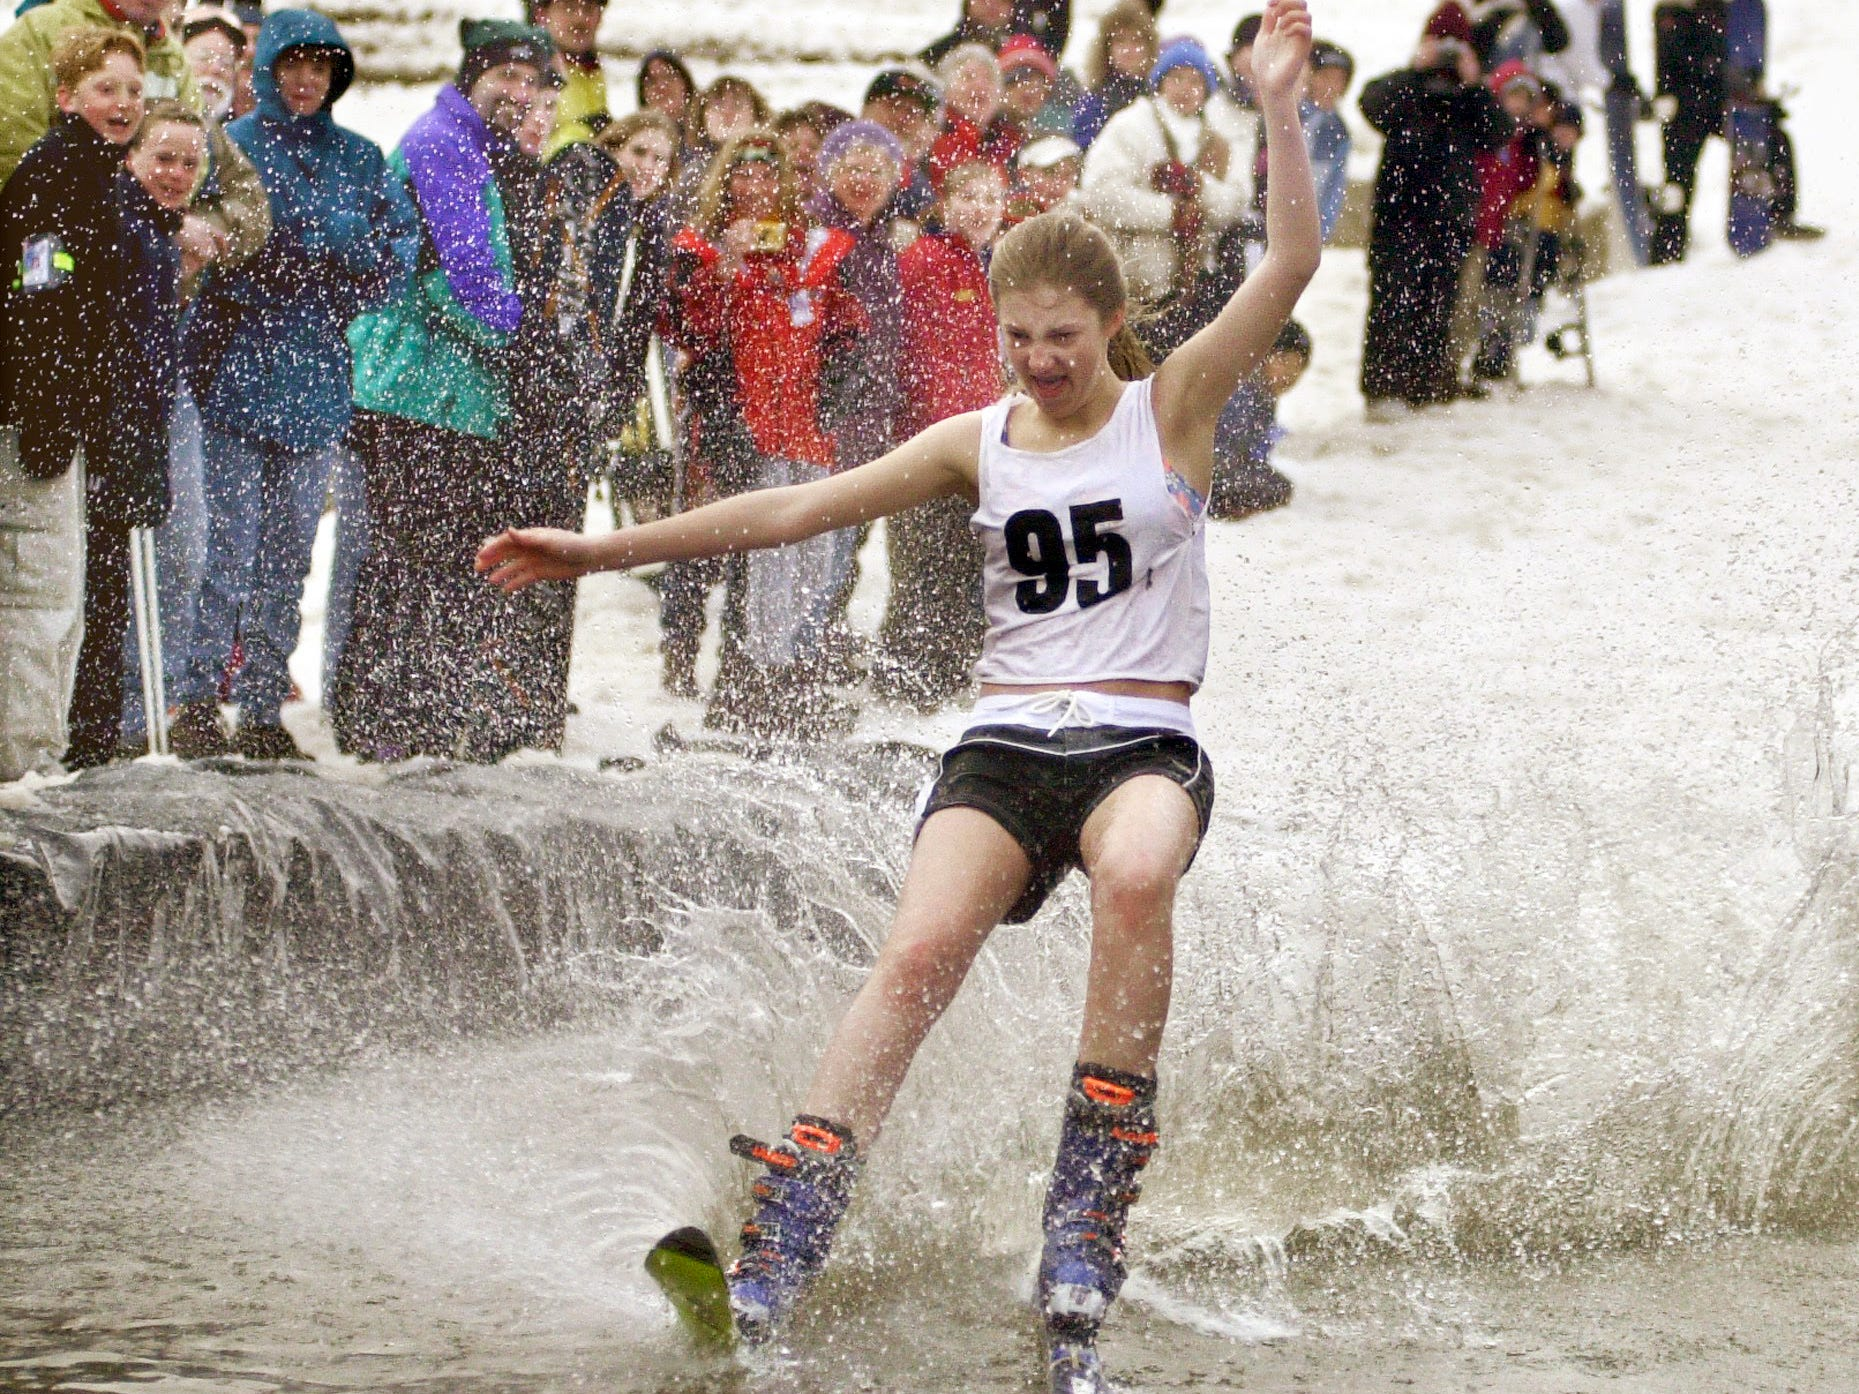 Jenna Yost, of York, Pa., makes it across the pond at Ski Roundtop near Lewisberry, Pa. on March 12, 2000, during the Pond Skimming contest. The contest was part of Roundtop's Spring Fest which included mountain bike races, a bikini downhill race, mogul competition and live music.